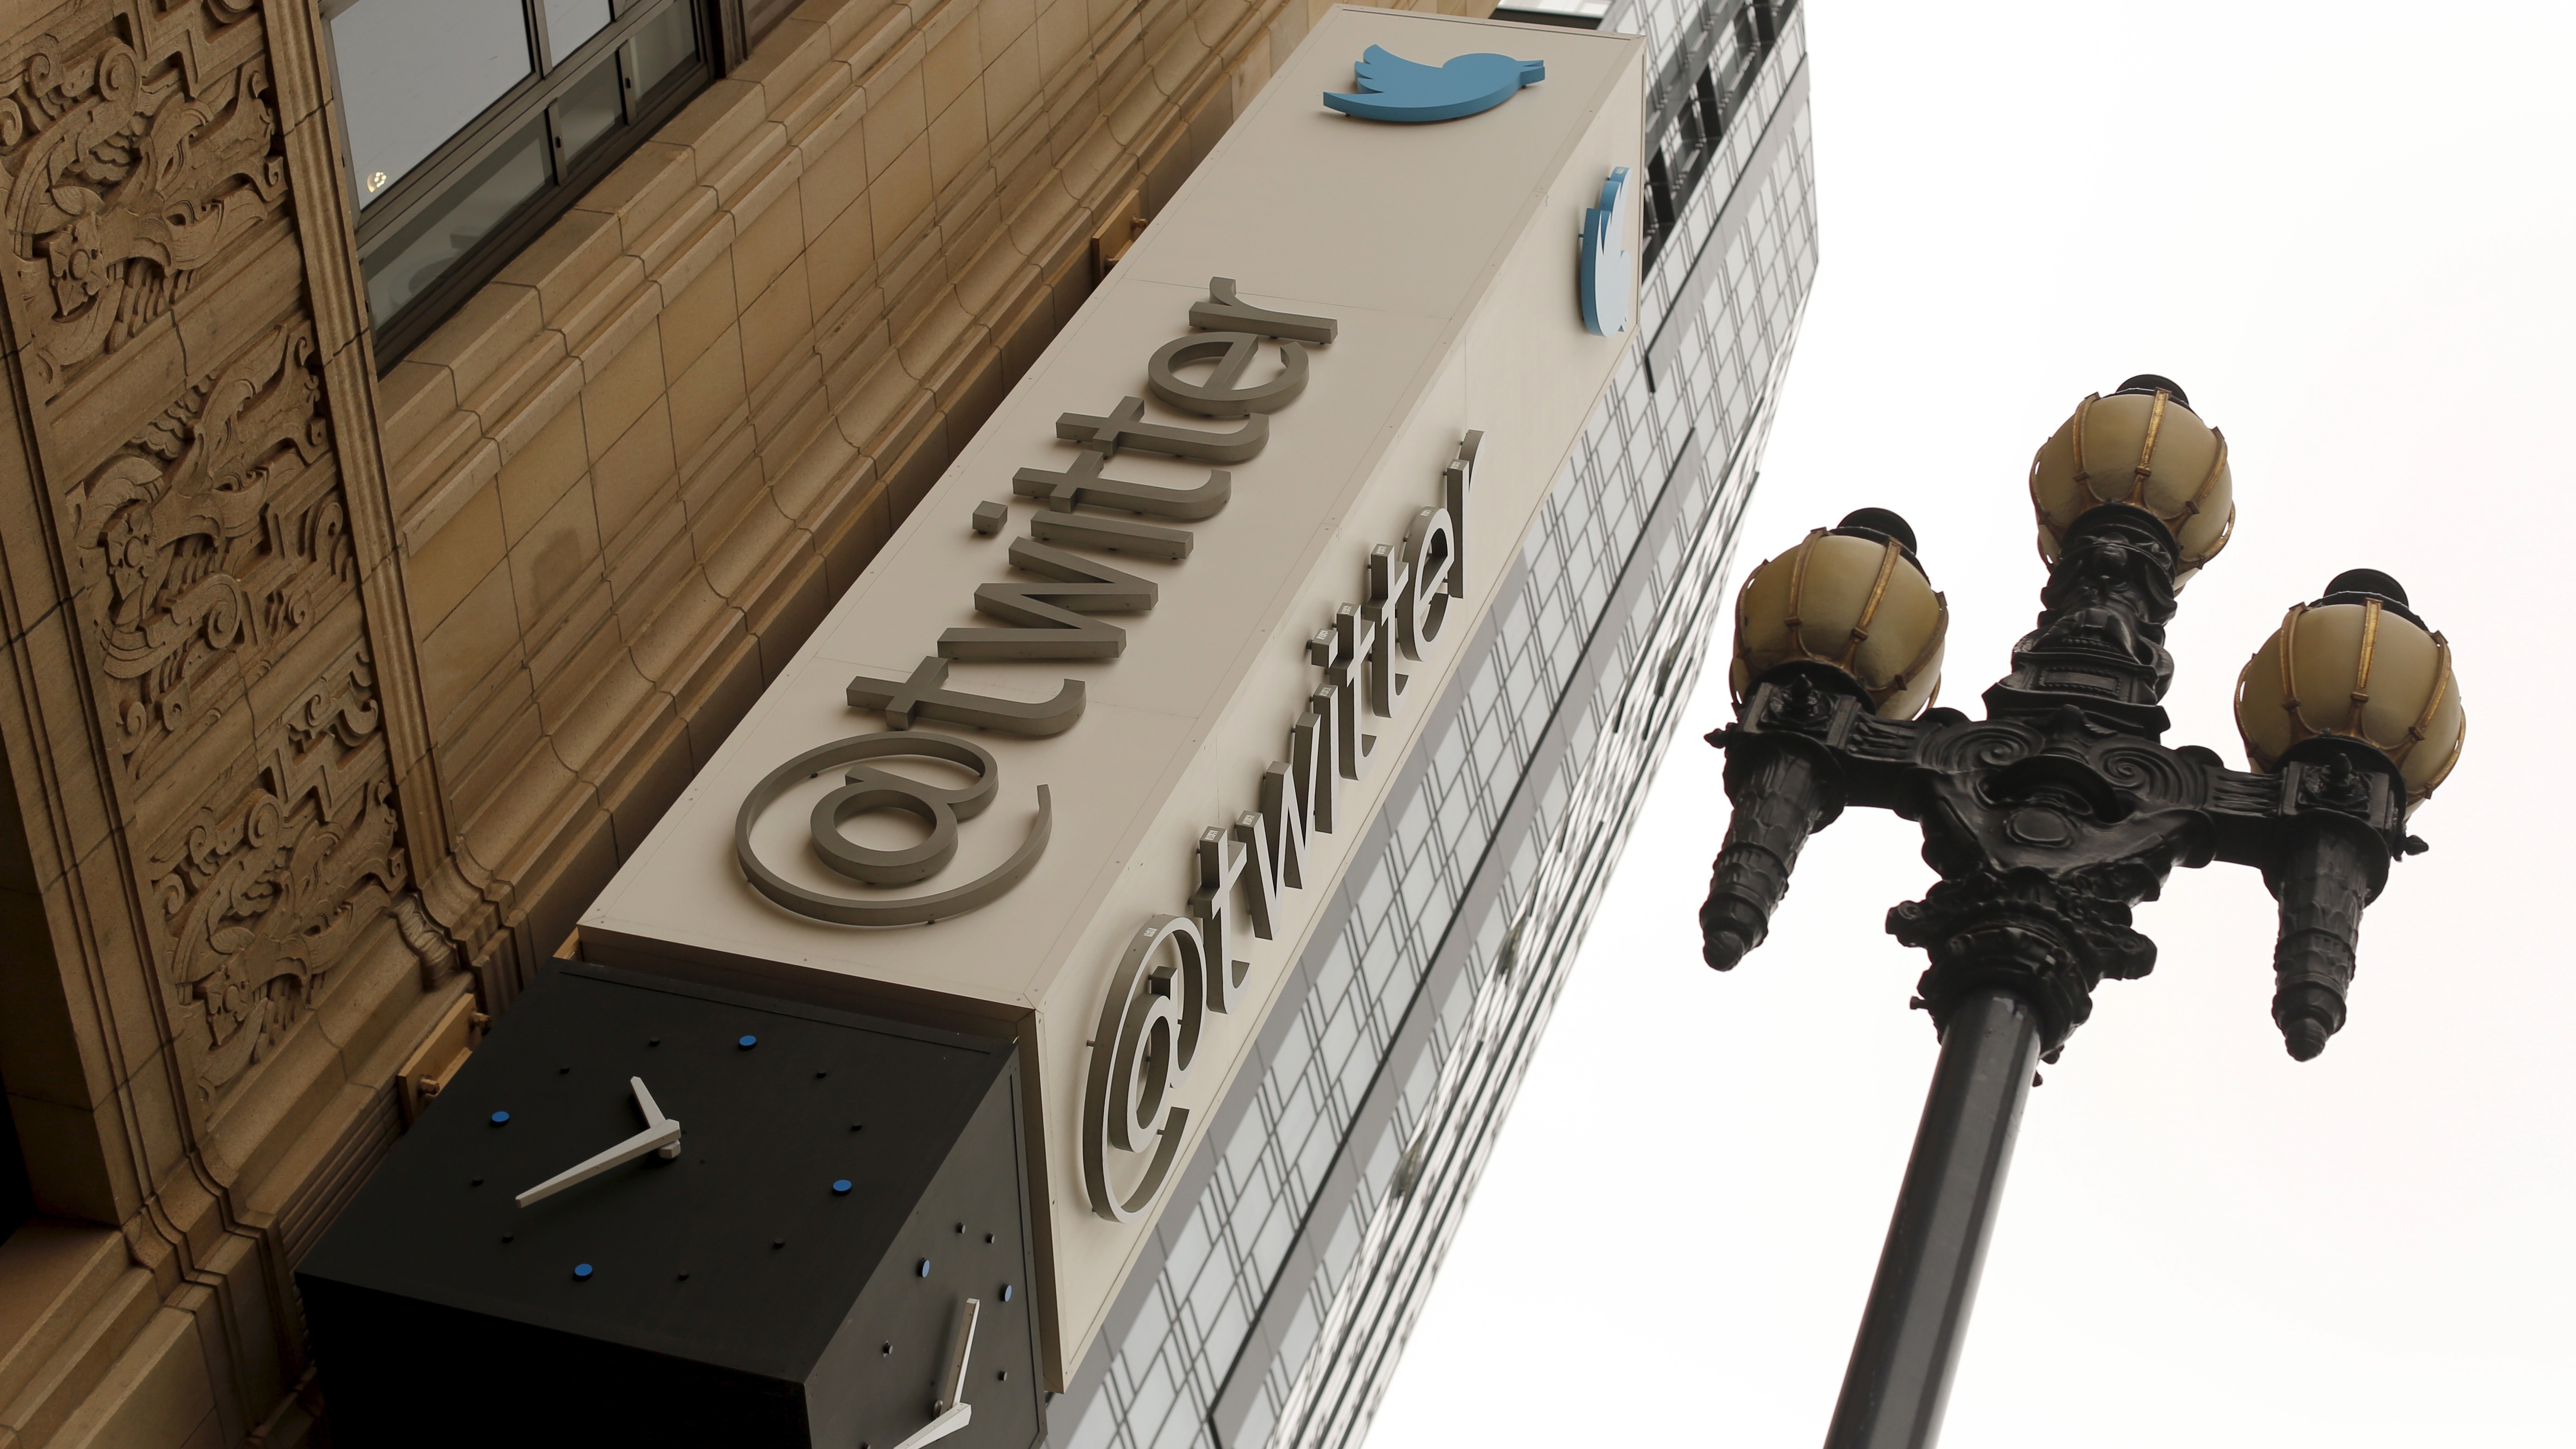 The Twitter logo is shown at its corporate headquarters  in San Francisco, California April 28, 2015. Twitter Inc. cut its full-year revenue forecast due to weak demand for its direct response products, sending its shares down as much as 24 percent on Tuesday.Twitter said it expected 2015 revenue of $2.17 billion to$2.27 billion, compared with an earlier forecast of $2.3 billion to $2.35 billion. Analysts on average had been expecting full-year revenue of $2.37 billion. REUTERS/Robert Galbraith - RTX1APZE